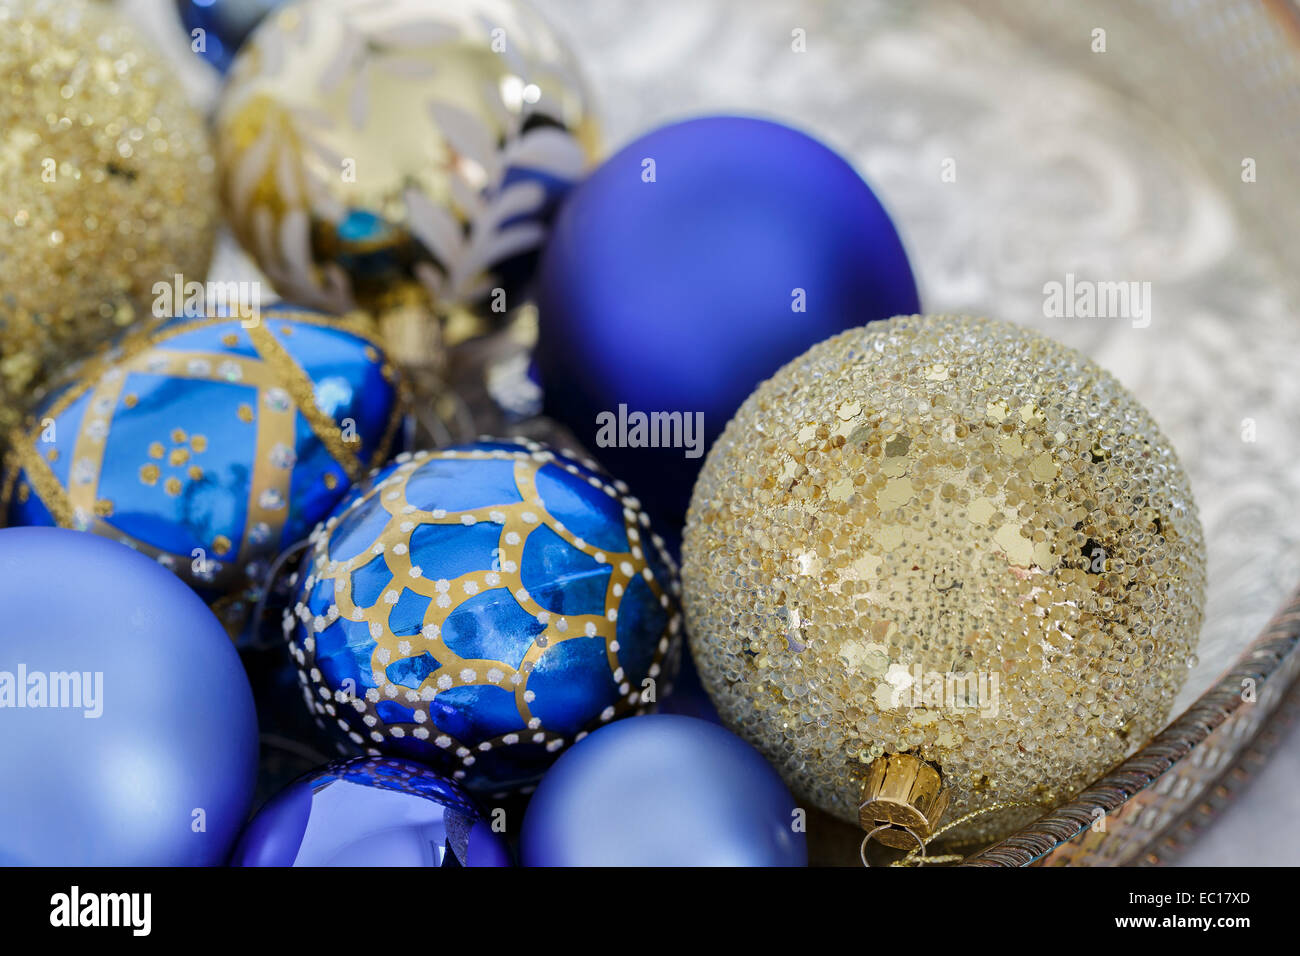 blue and gold christmas decorations on a silver tray stock image - Blue And Gold Christmas Decorations